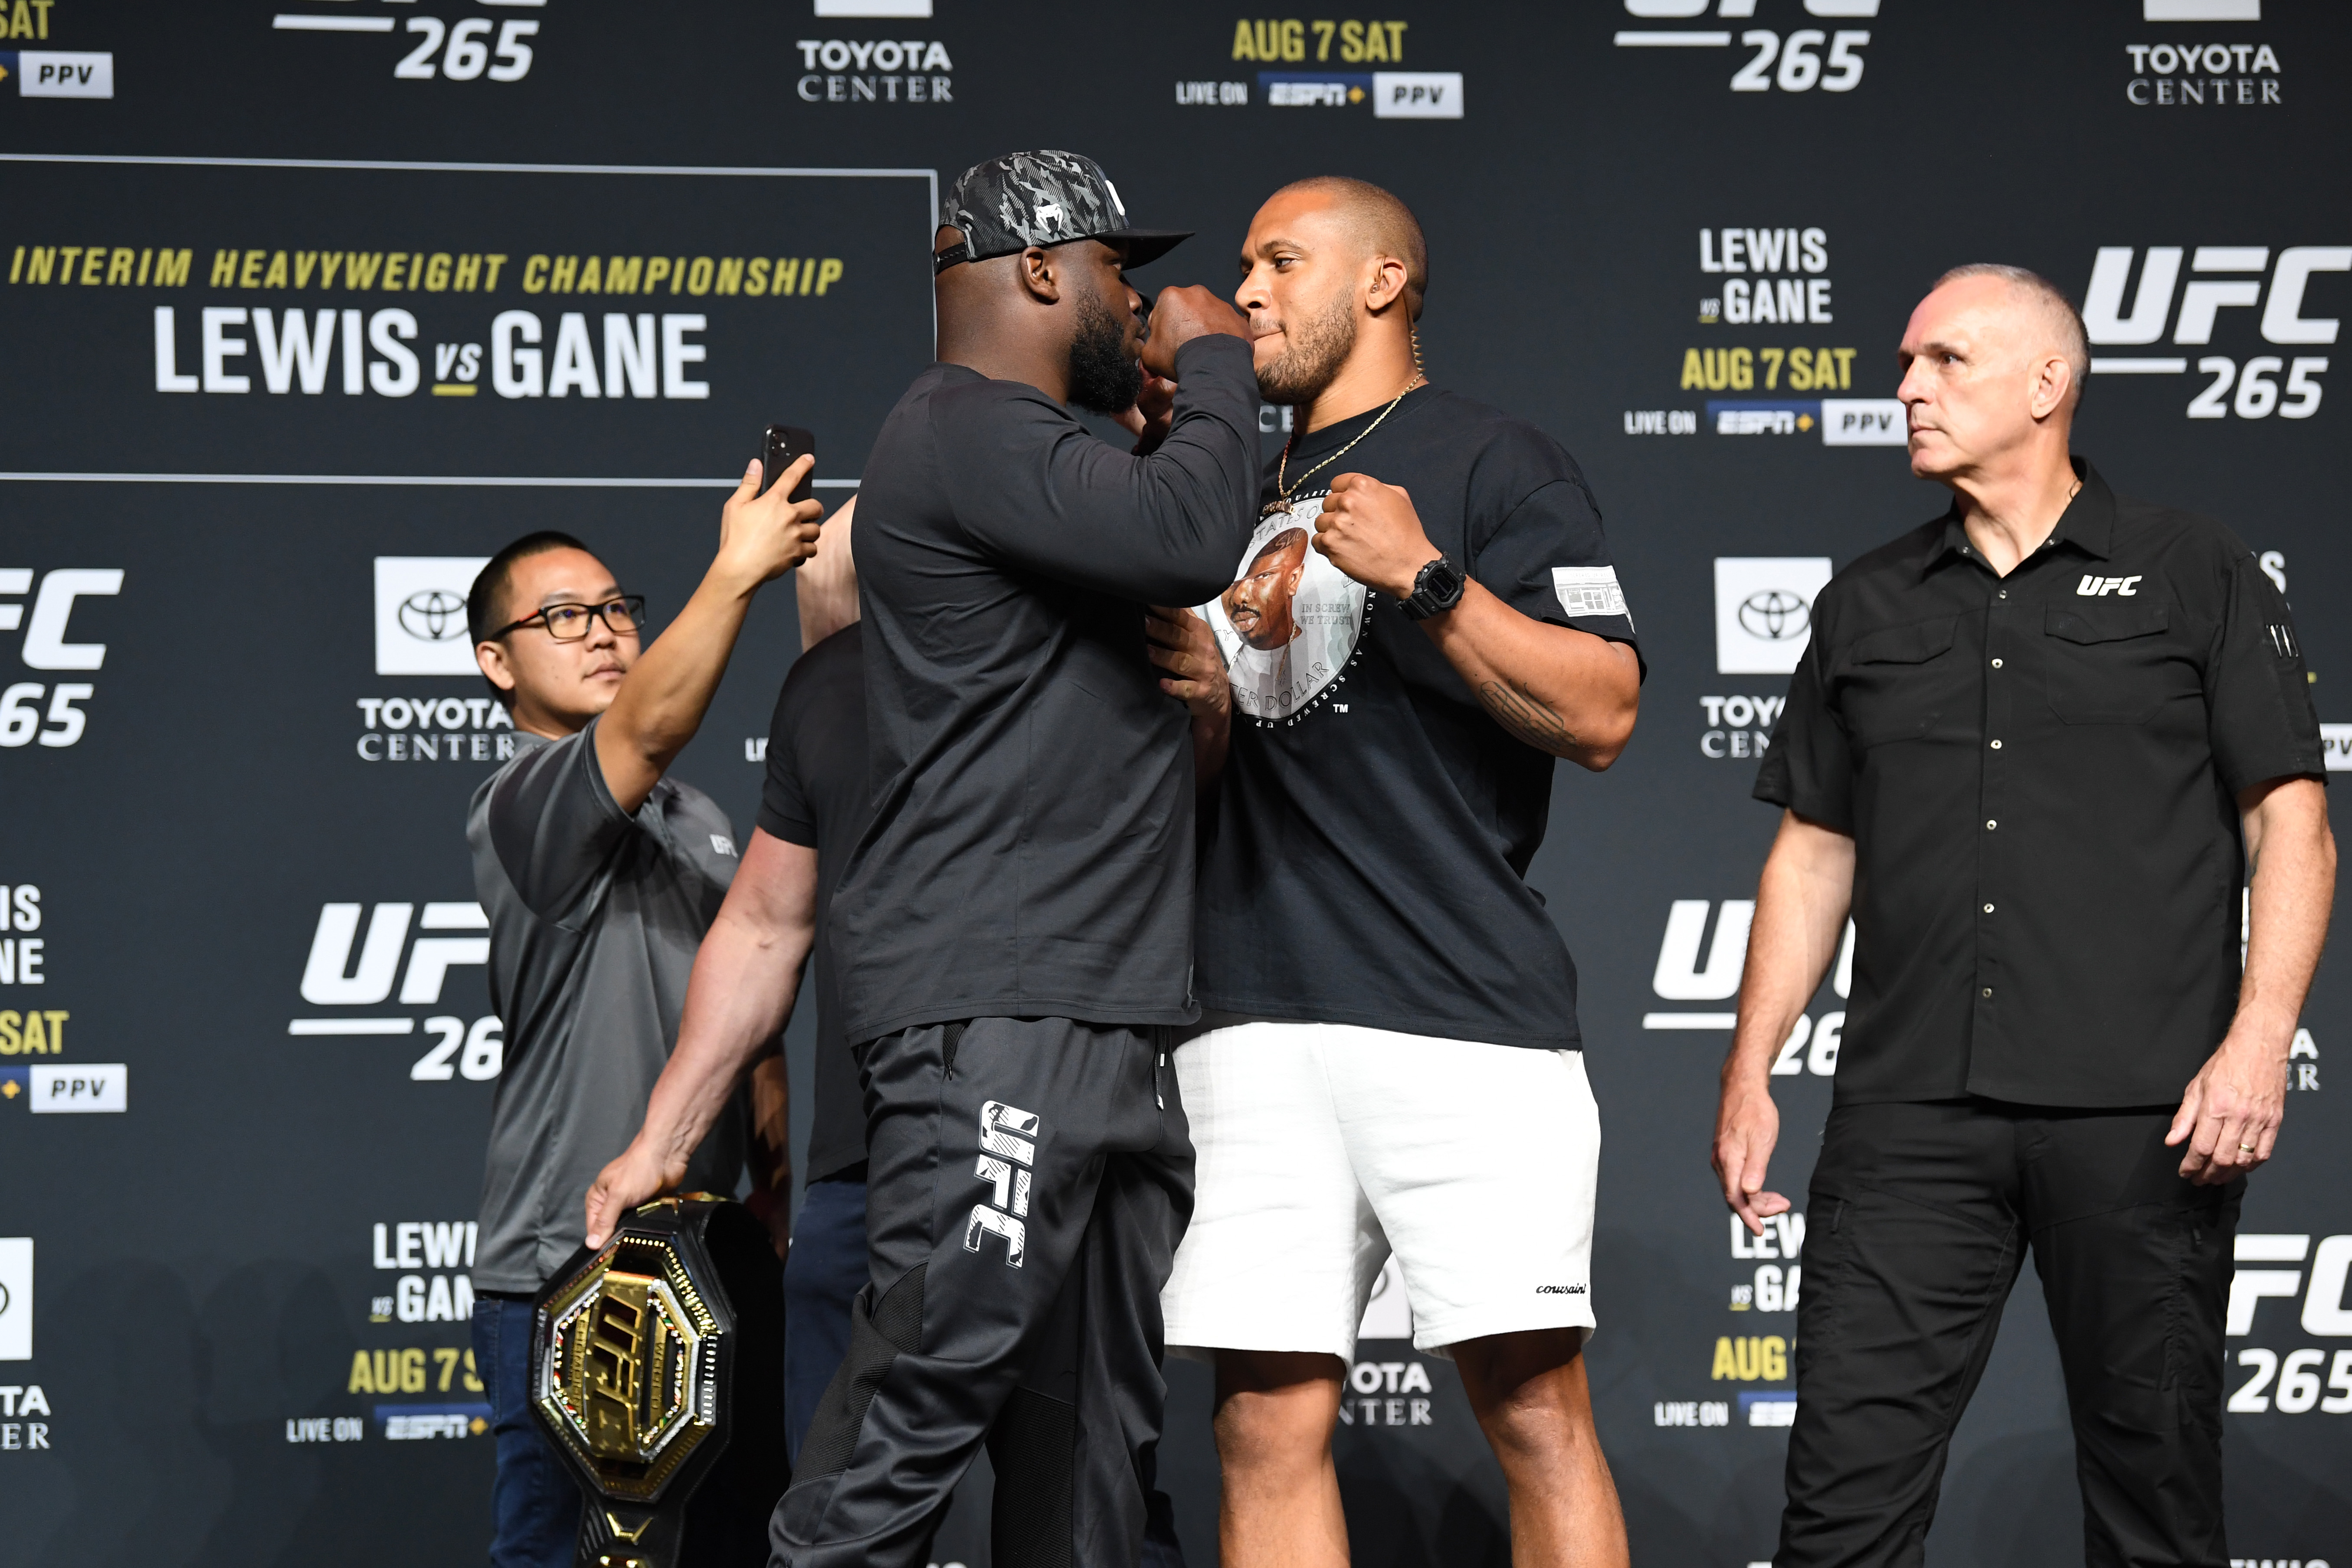 Derrick Lewis and Ciryl Gane of France face off during the UFC 265 press conference at at Toyota Center on August 05, 2021 in Houston, Texas.